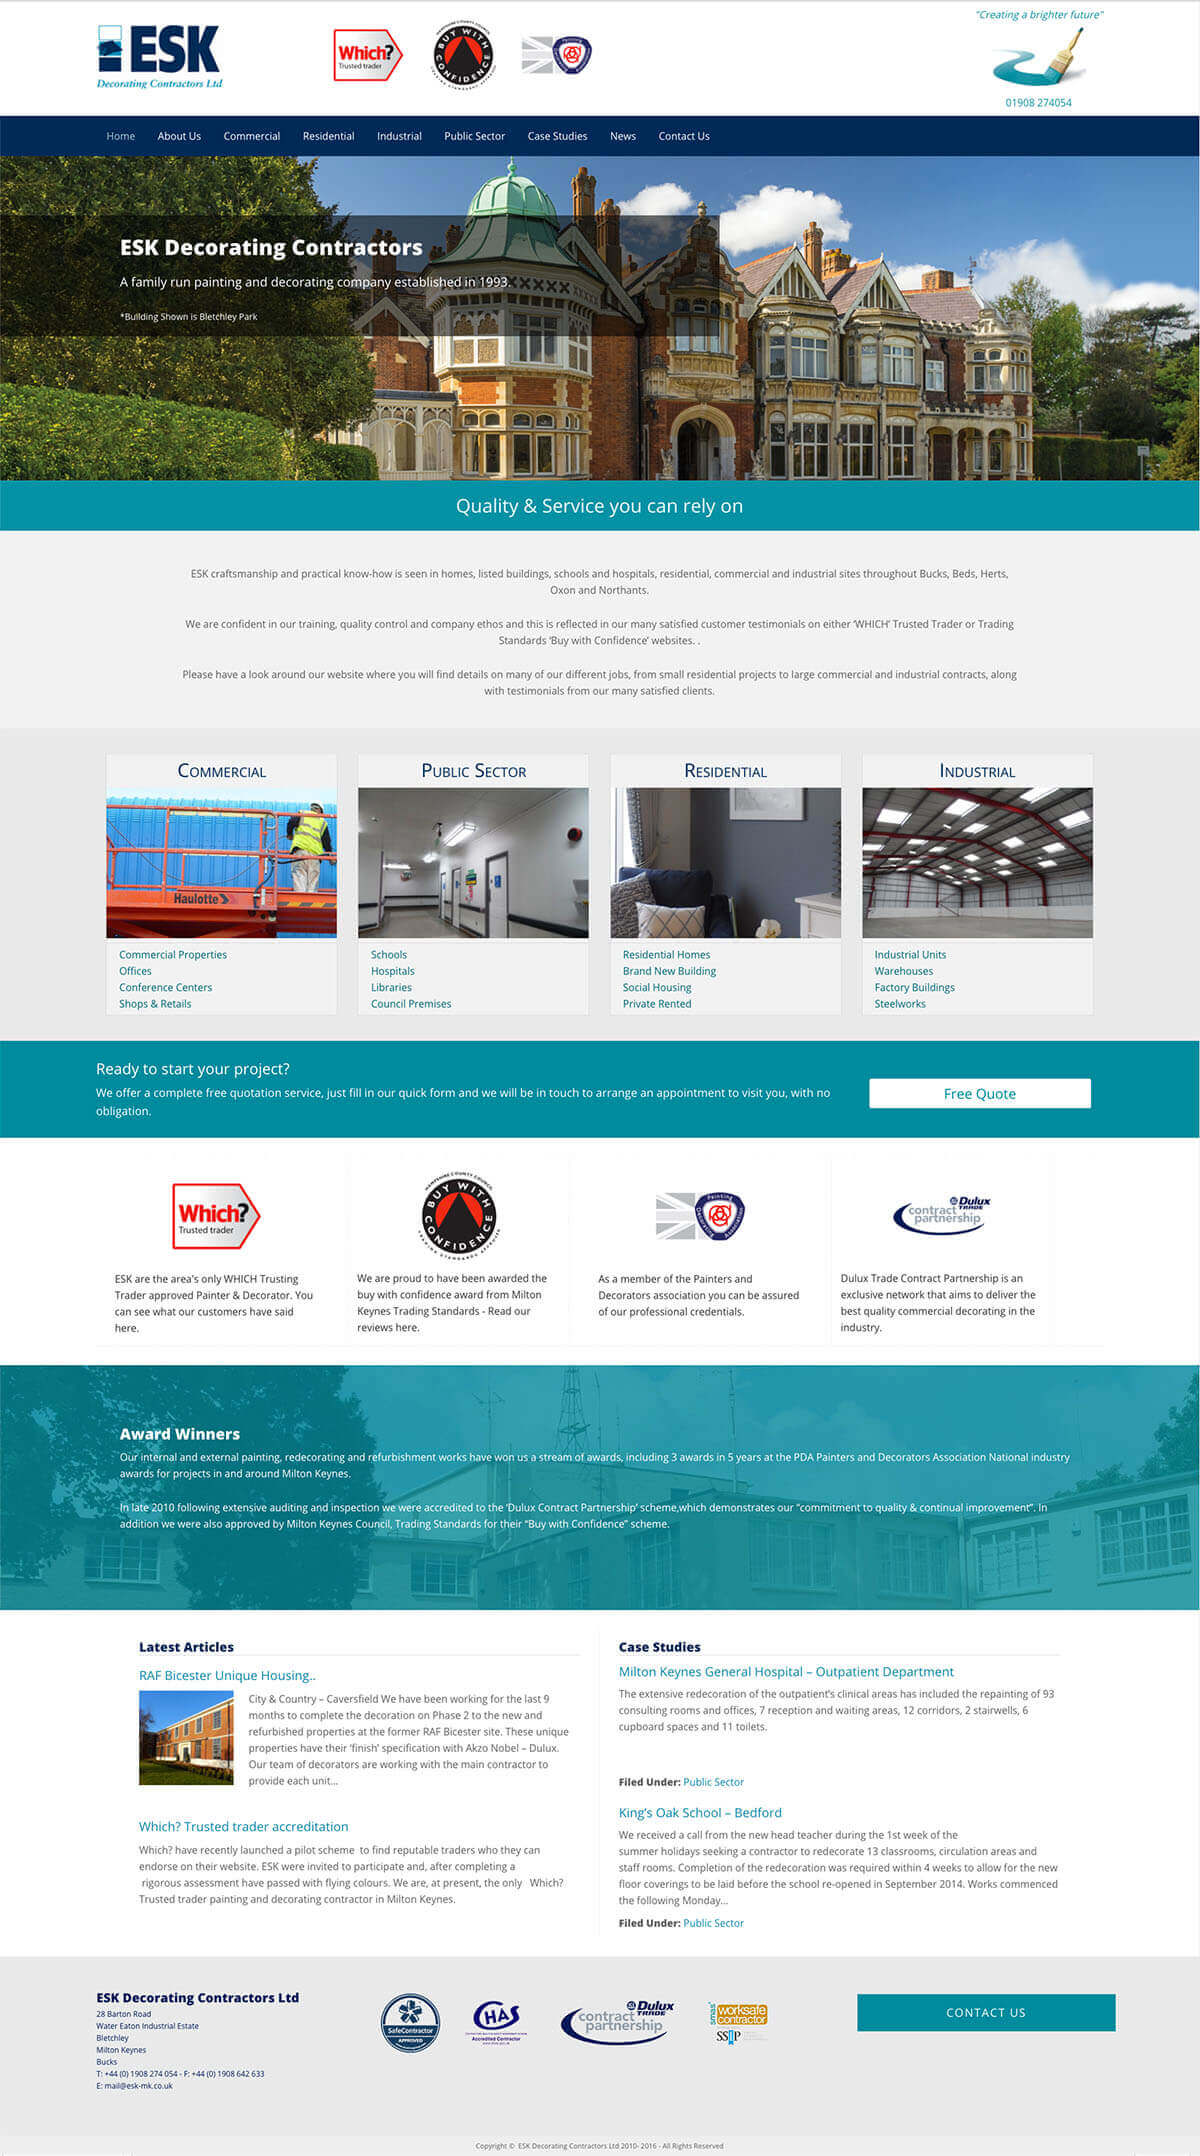 esk_homepage_after_image